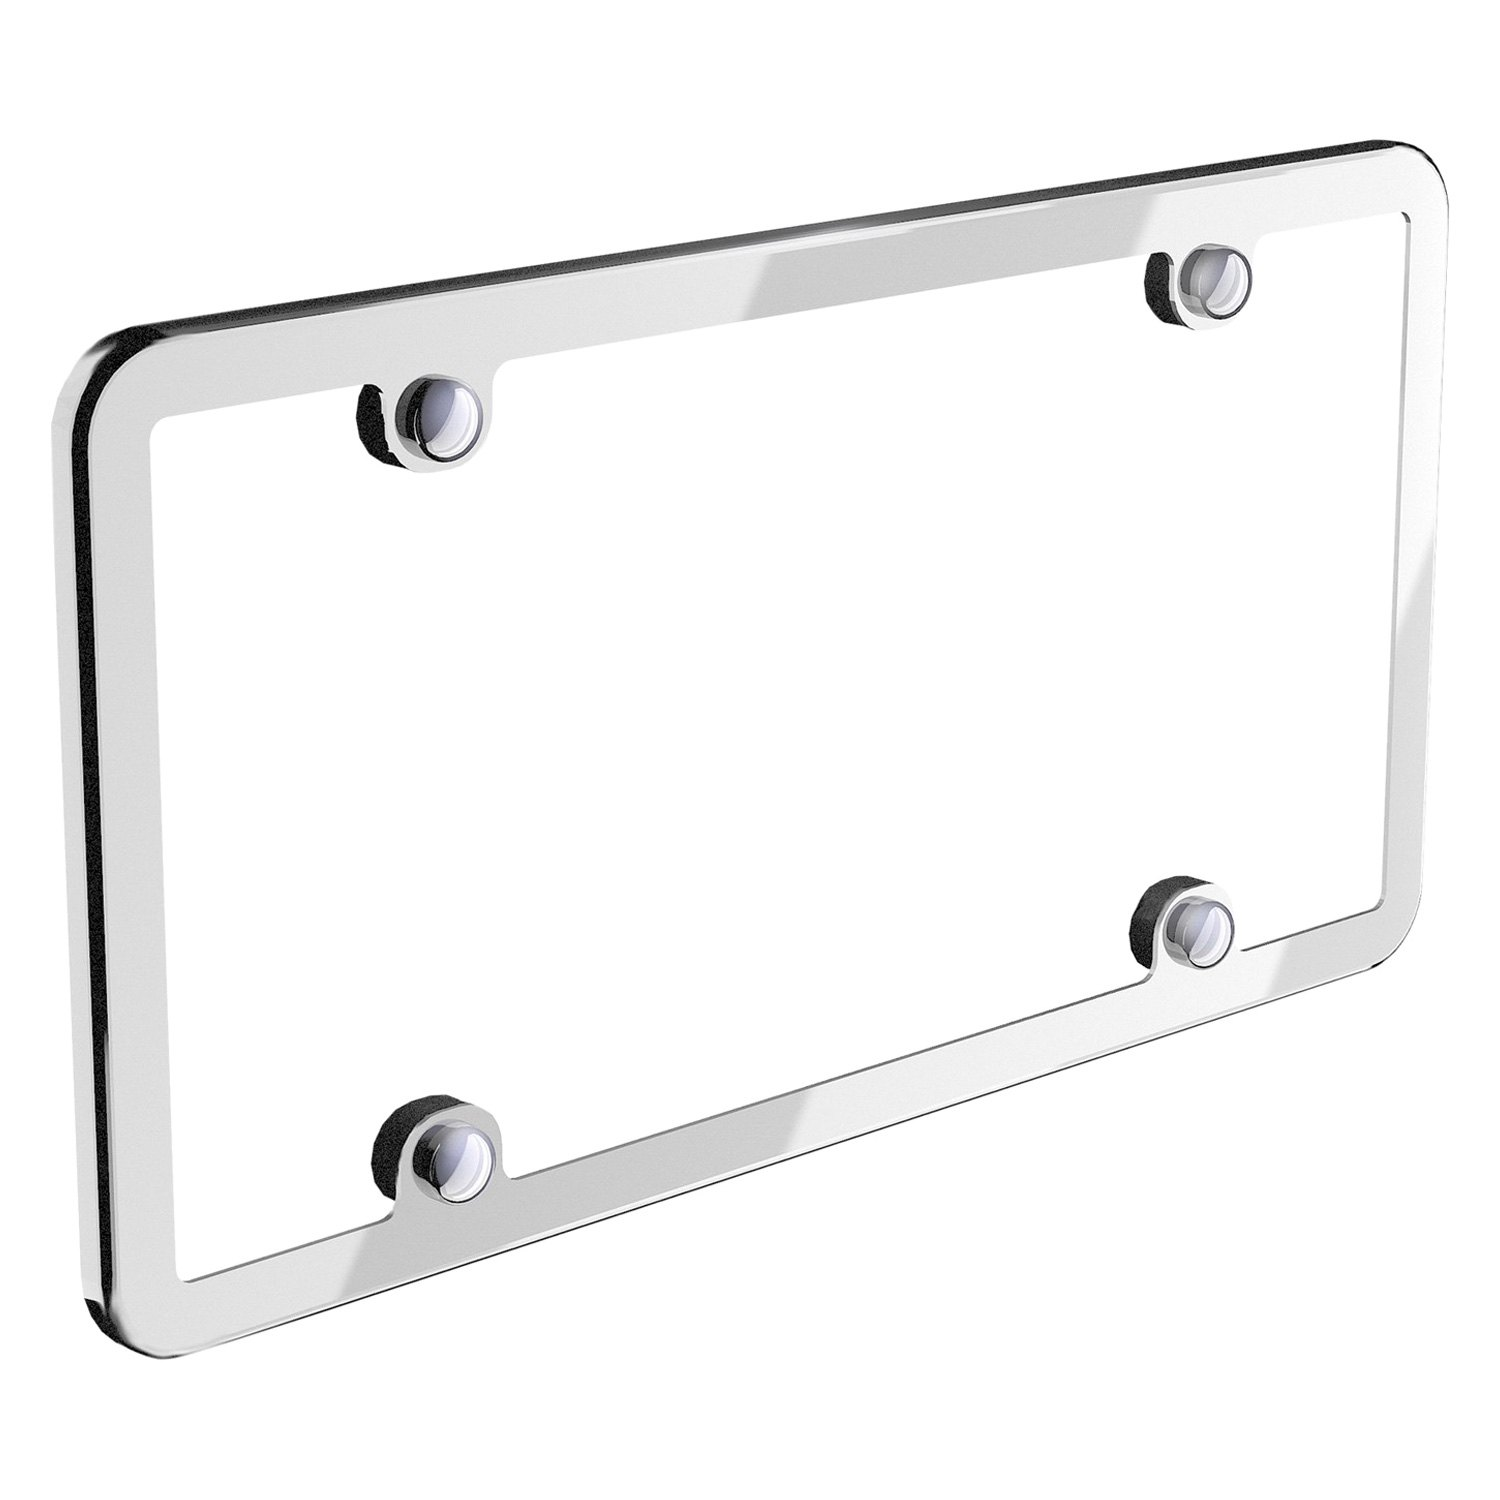 WeatherTech® 8ALPSS1 - StainlessFrame Chrome License Plate Frame